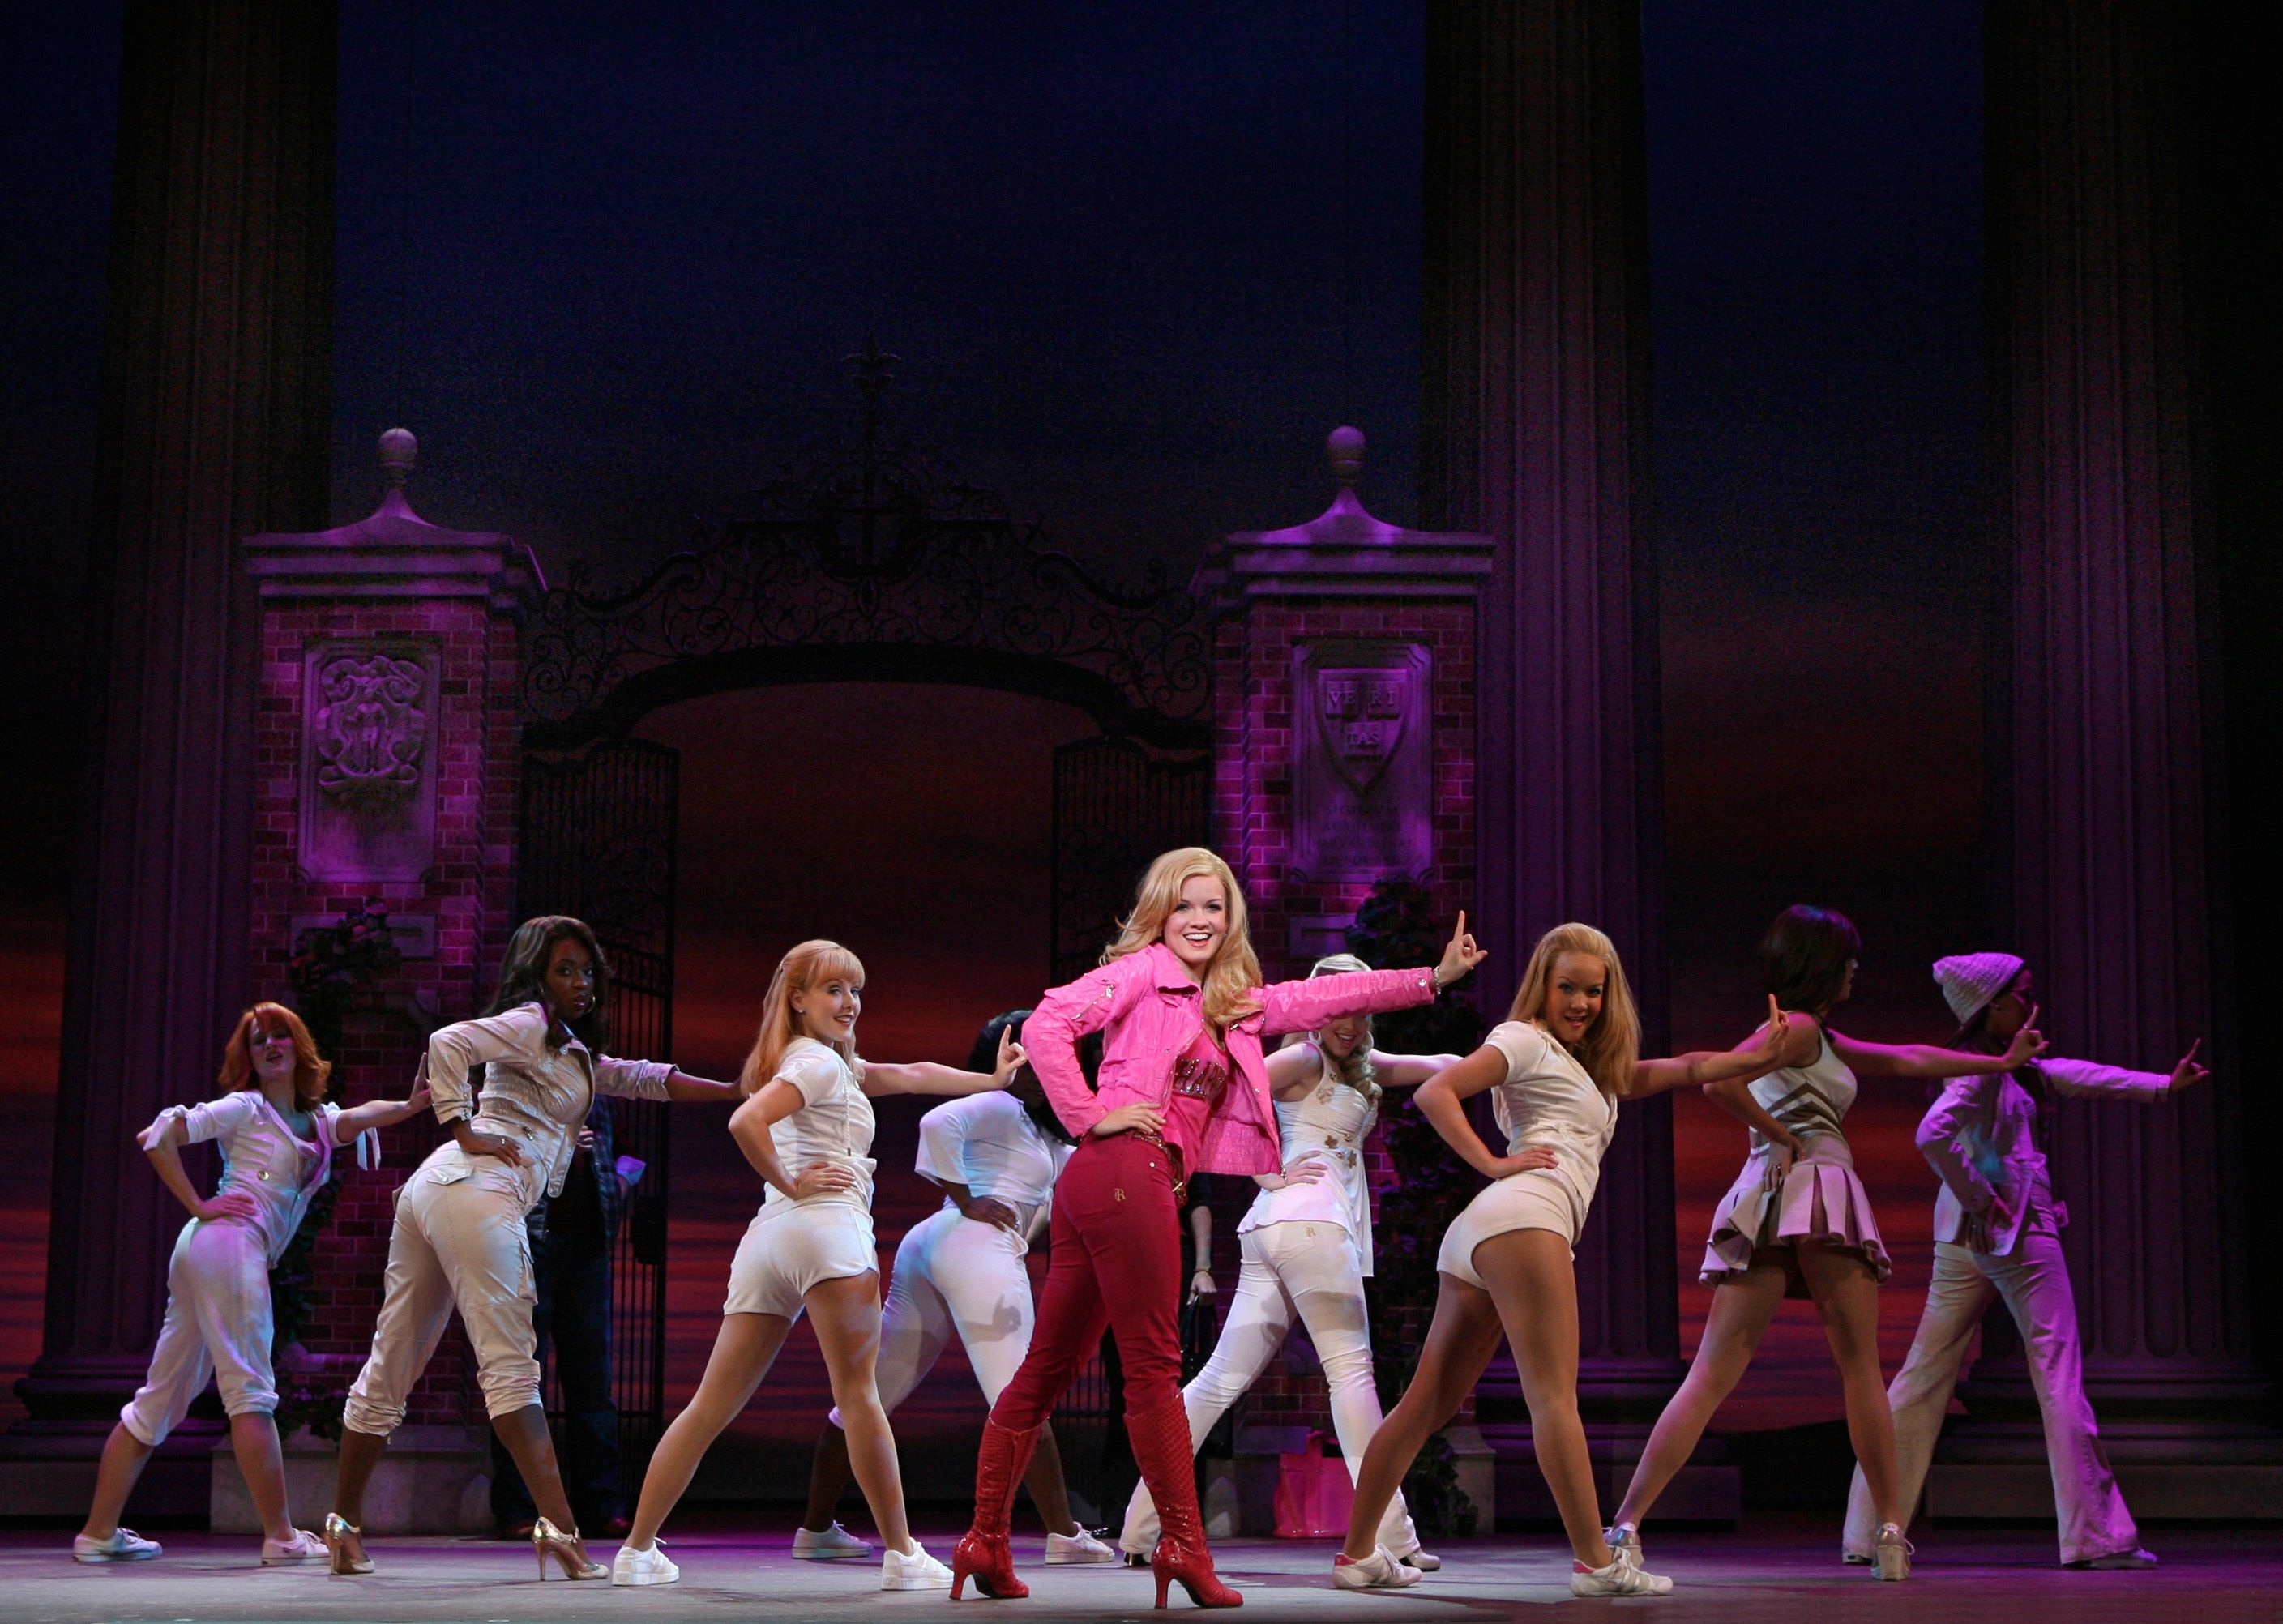 Review Legally Blonde Legally Blonde Musical Legally Blonde